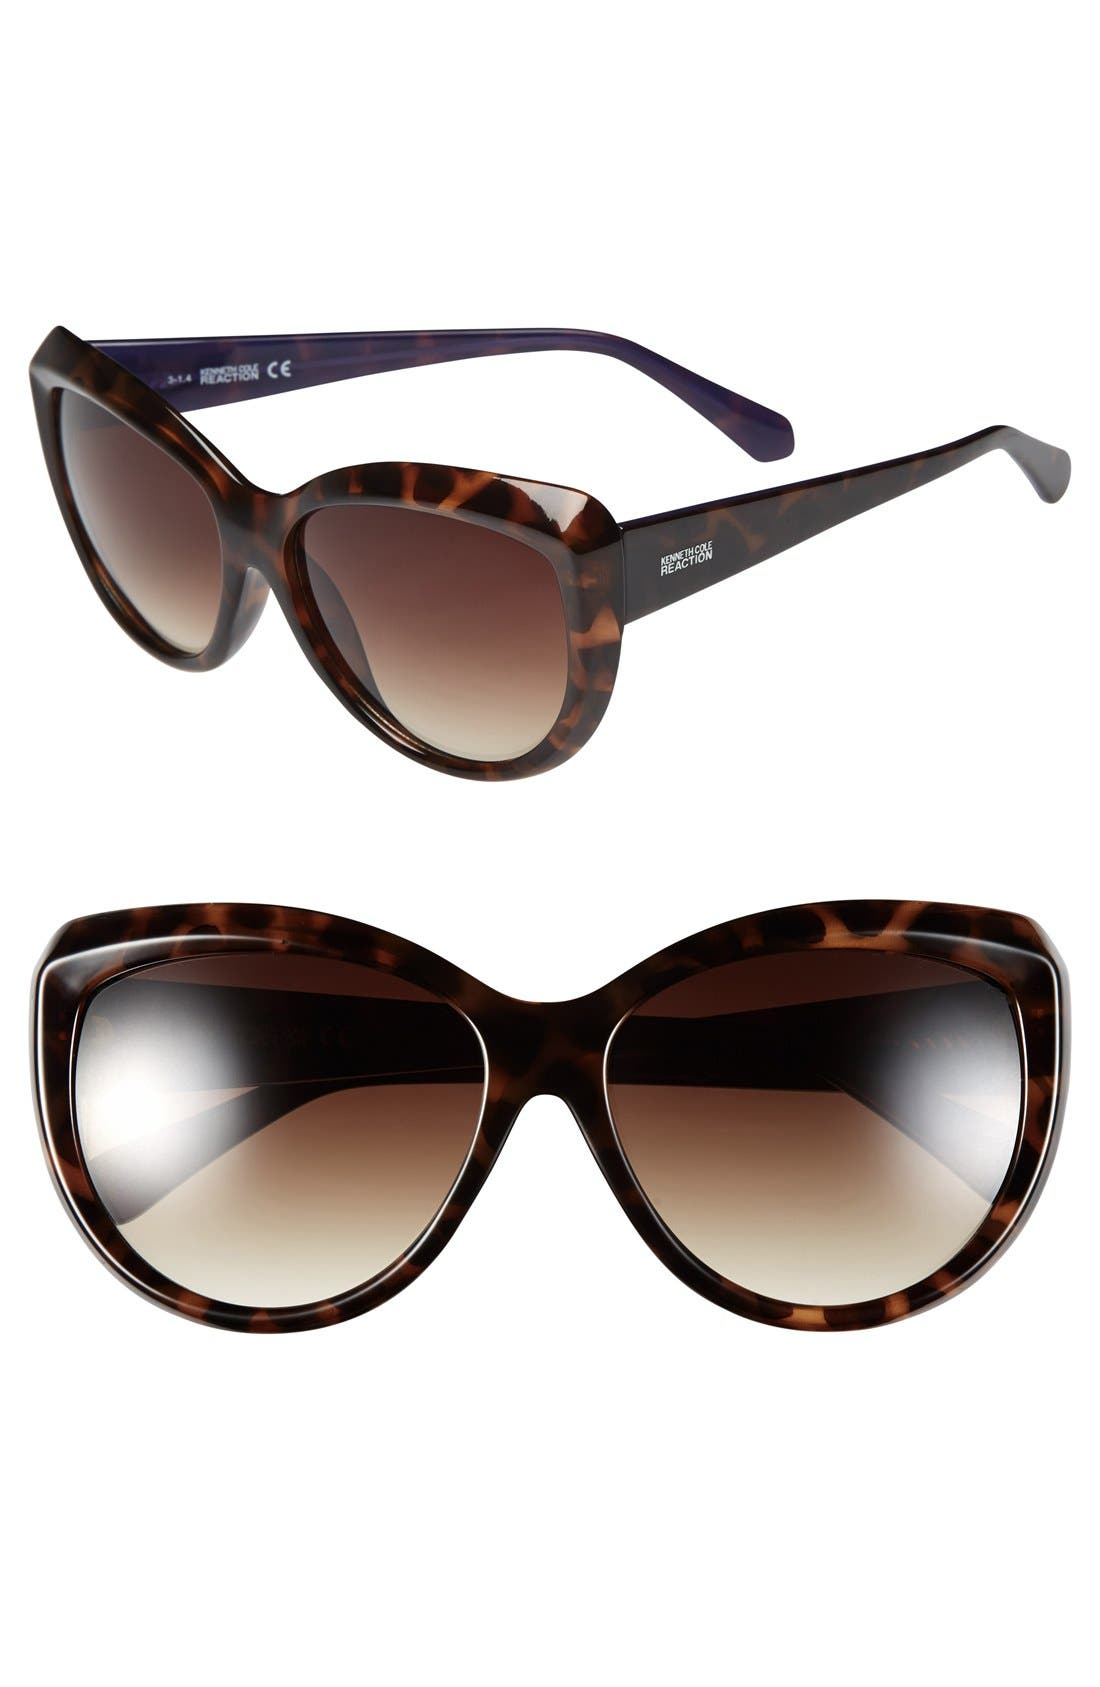 Main Image - Kenneth Cole Reaction 59mm Cat Eye Sunglasses